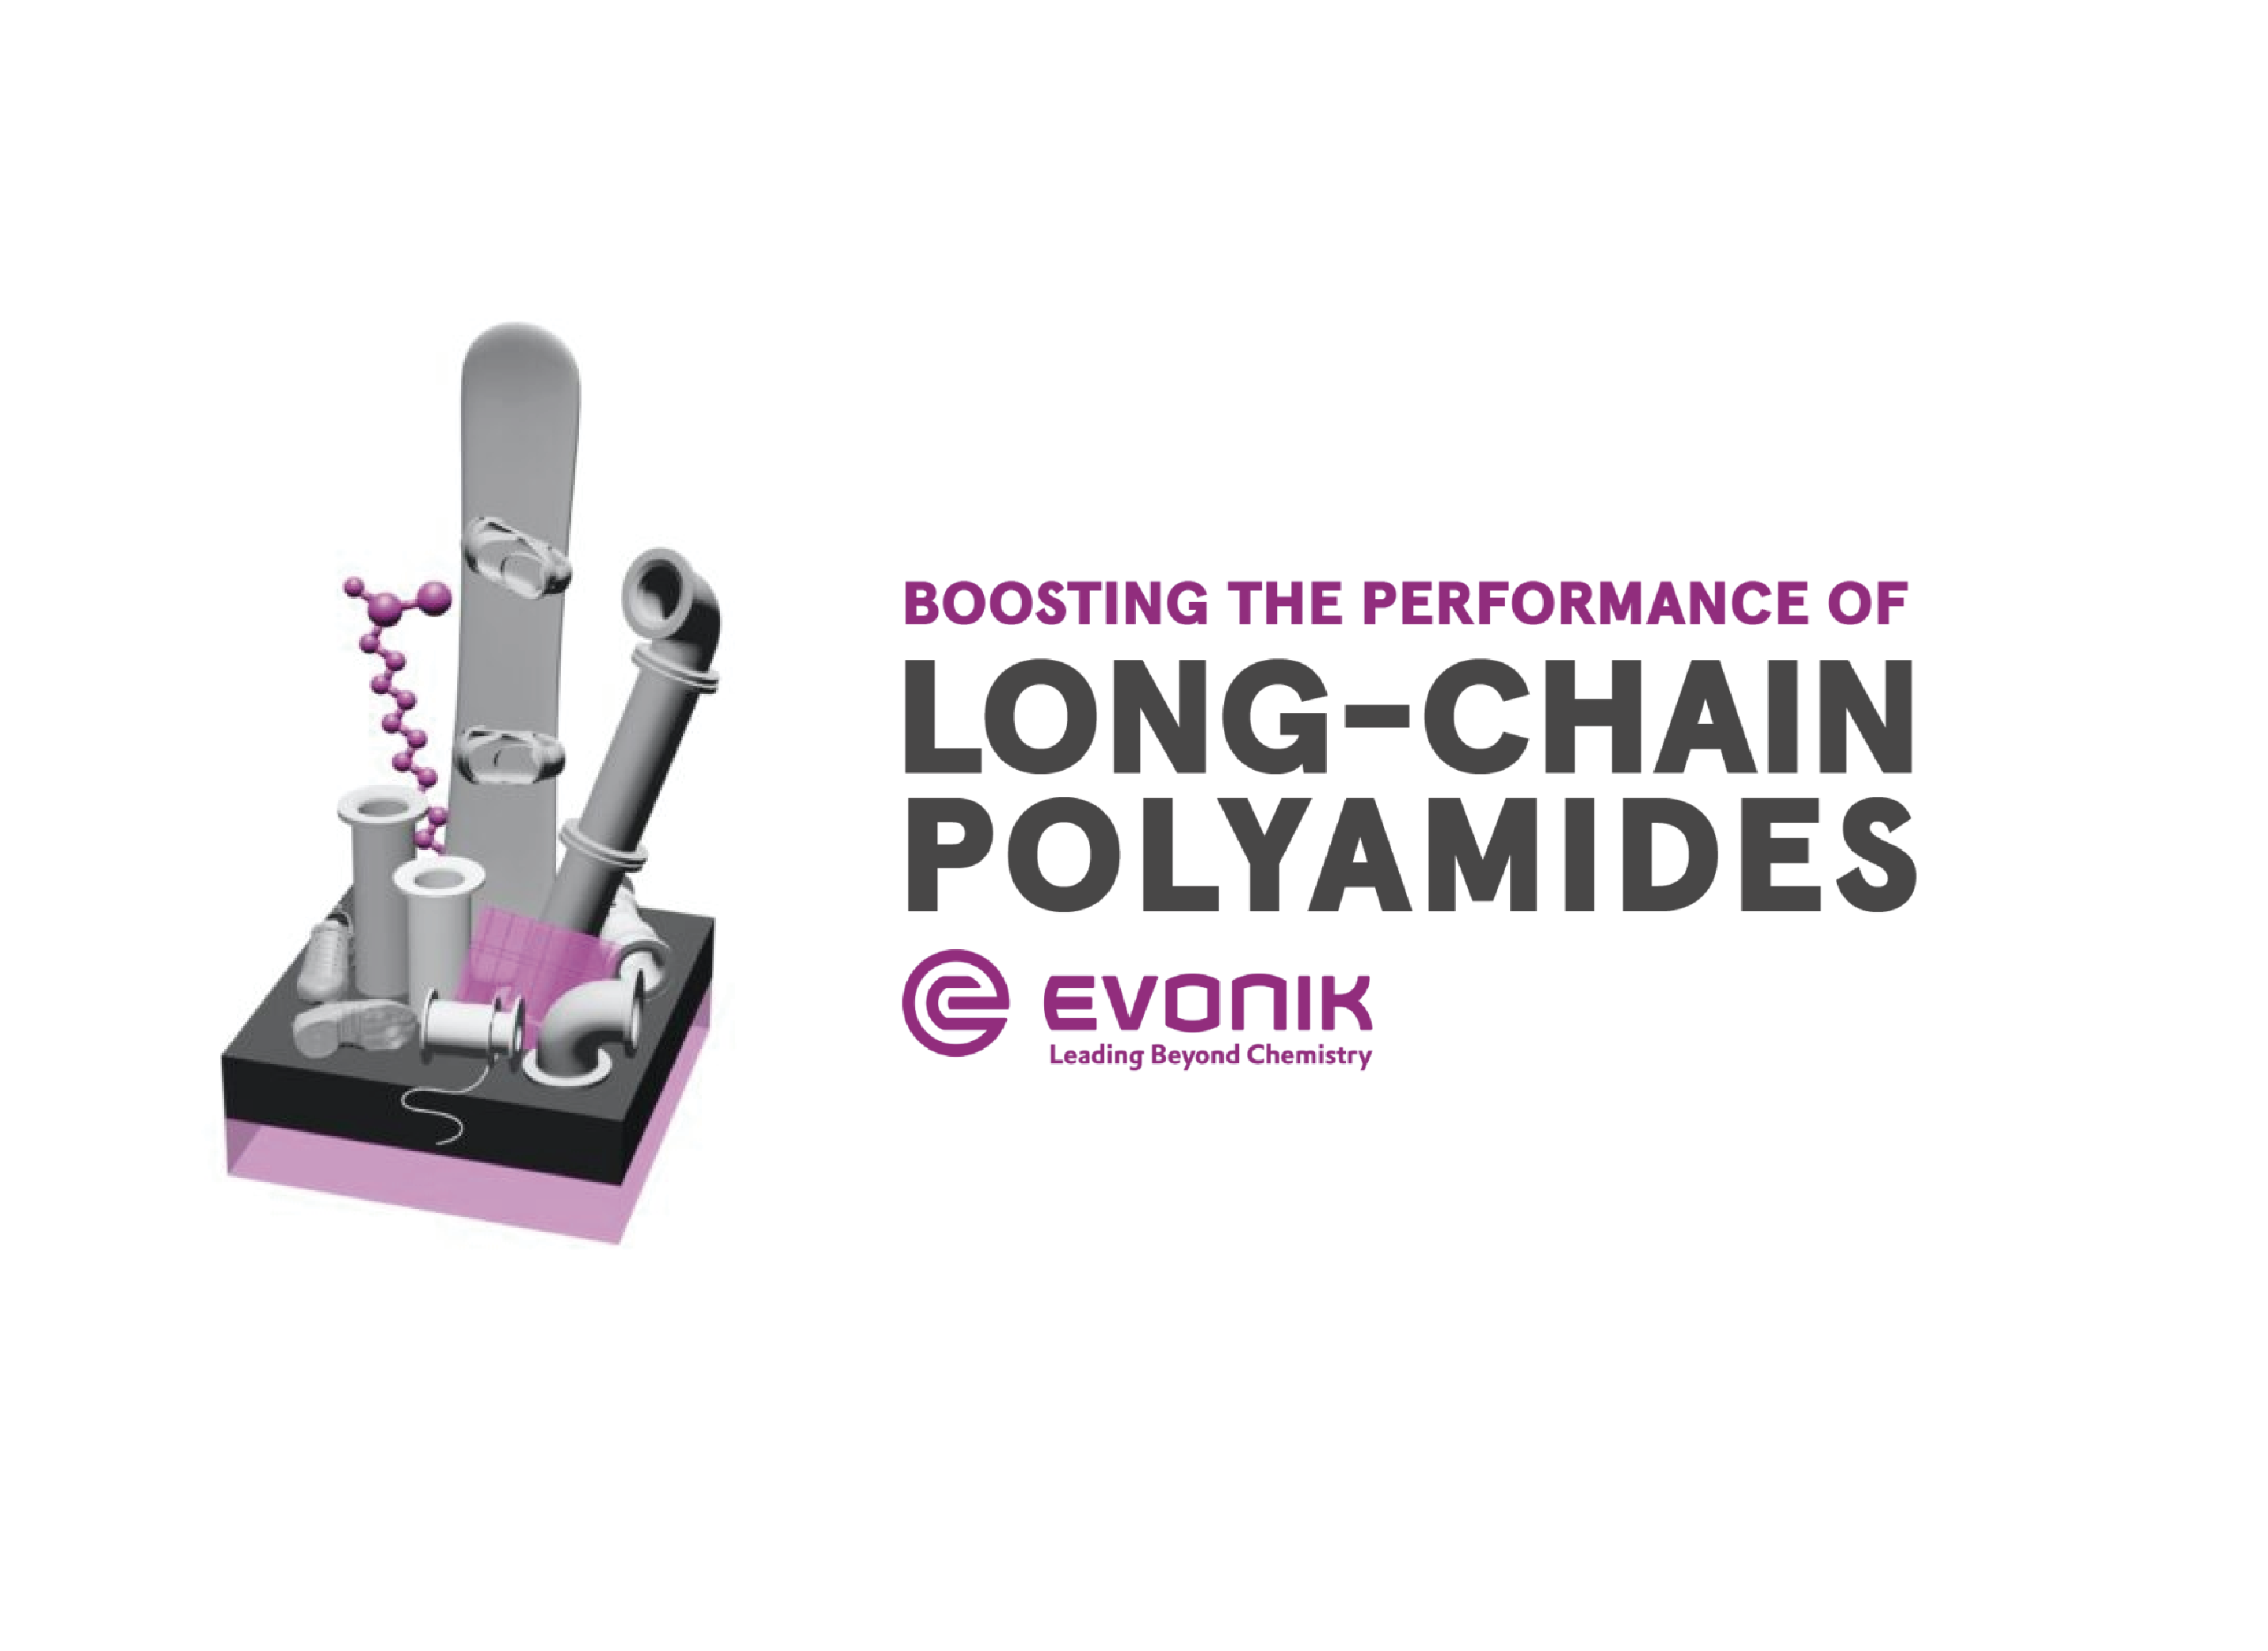 evonik – Boosting the performance of long-chain polyamides